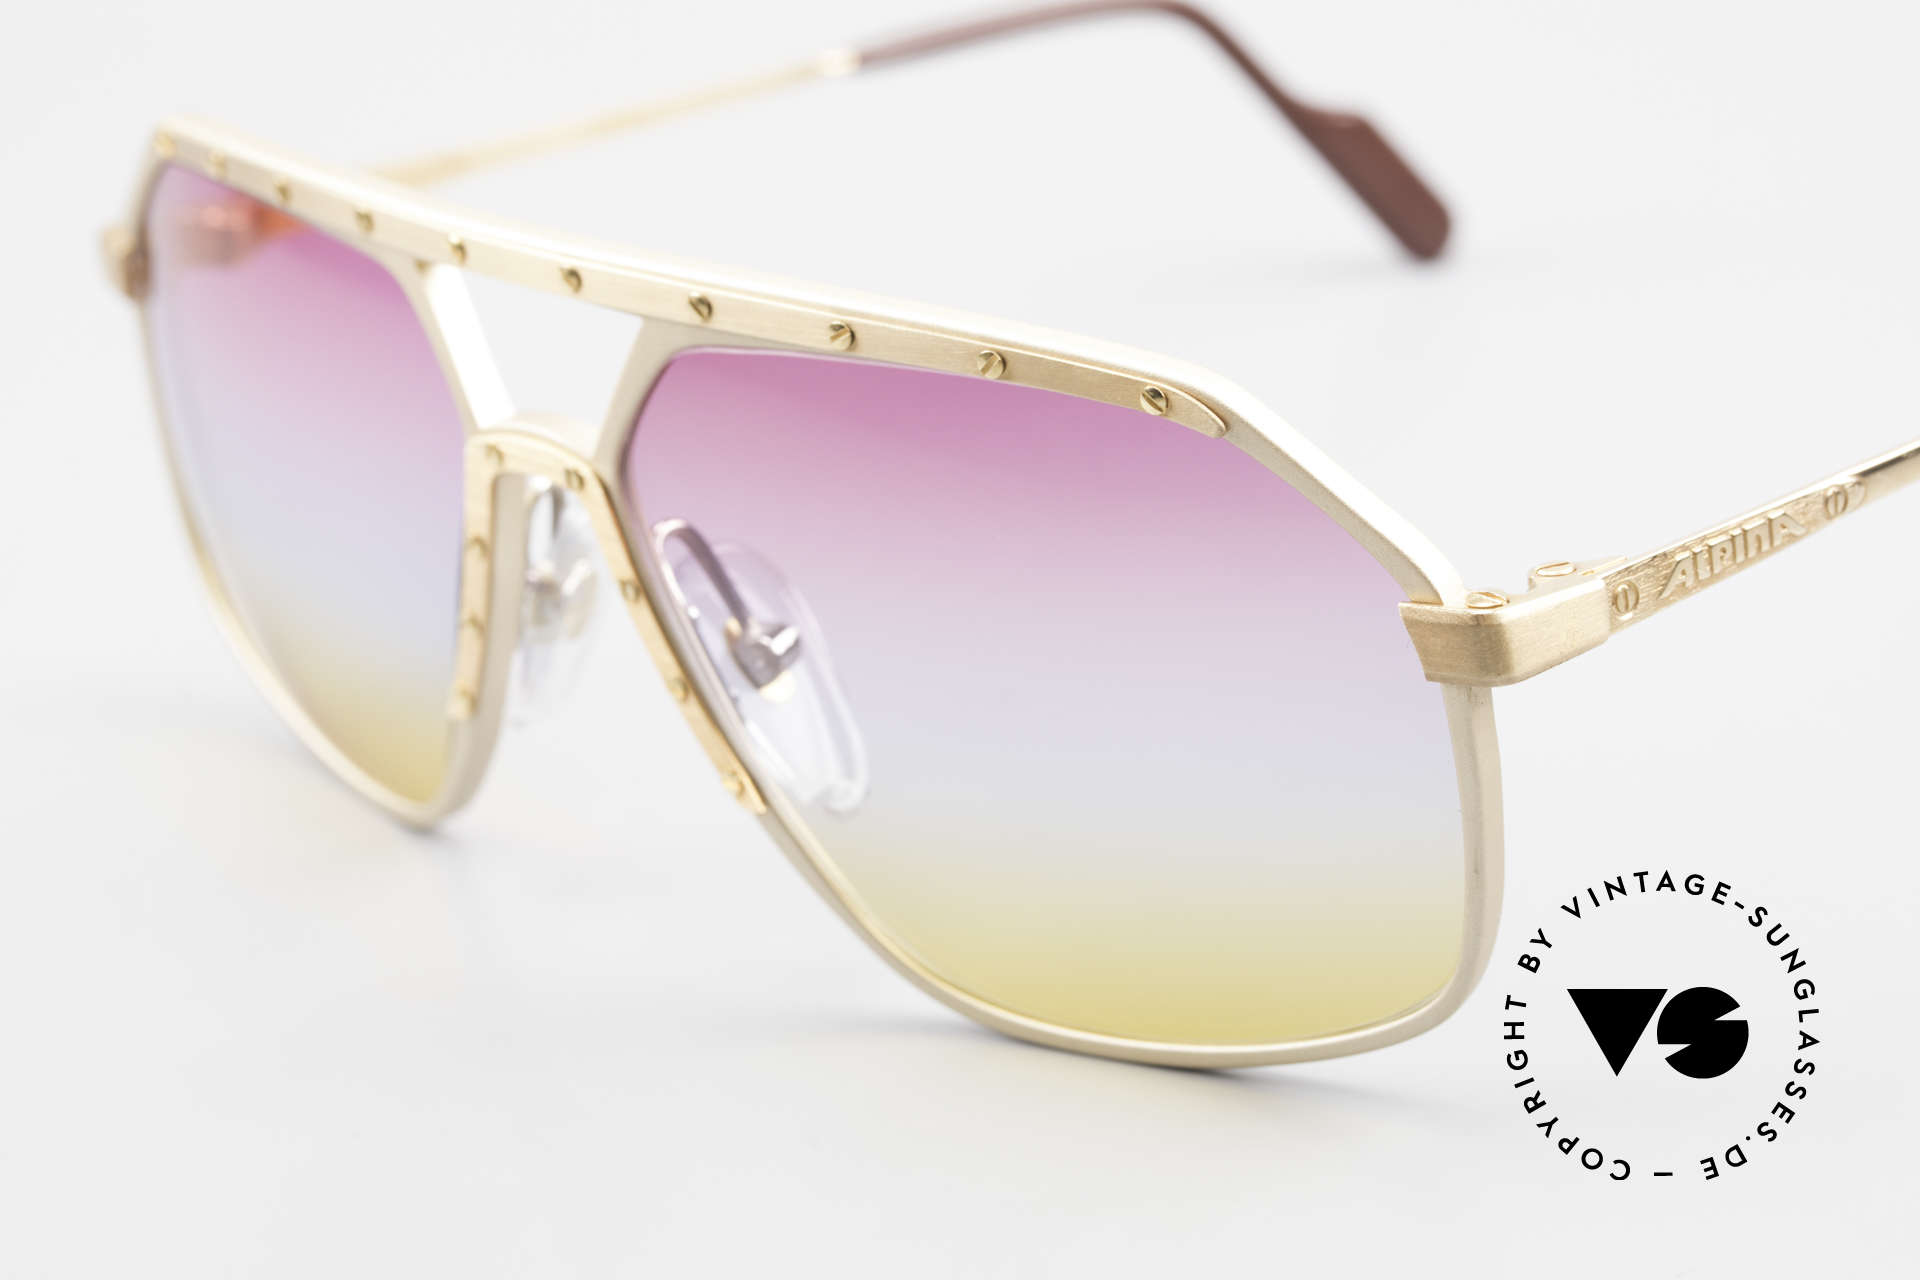 Alpina M6 Iconic 80's Shades Tricolored, the Alpina M6's were made between 1987 and 1991, Made for Men and Women